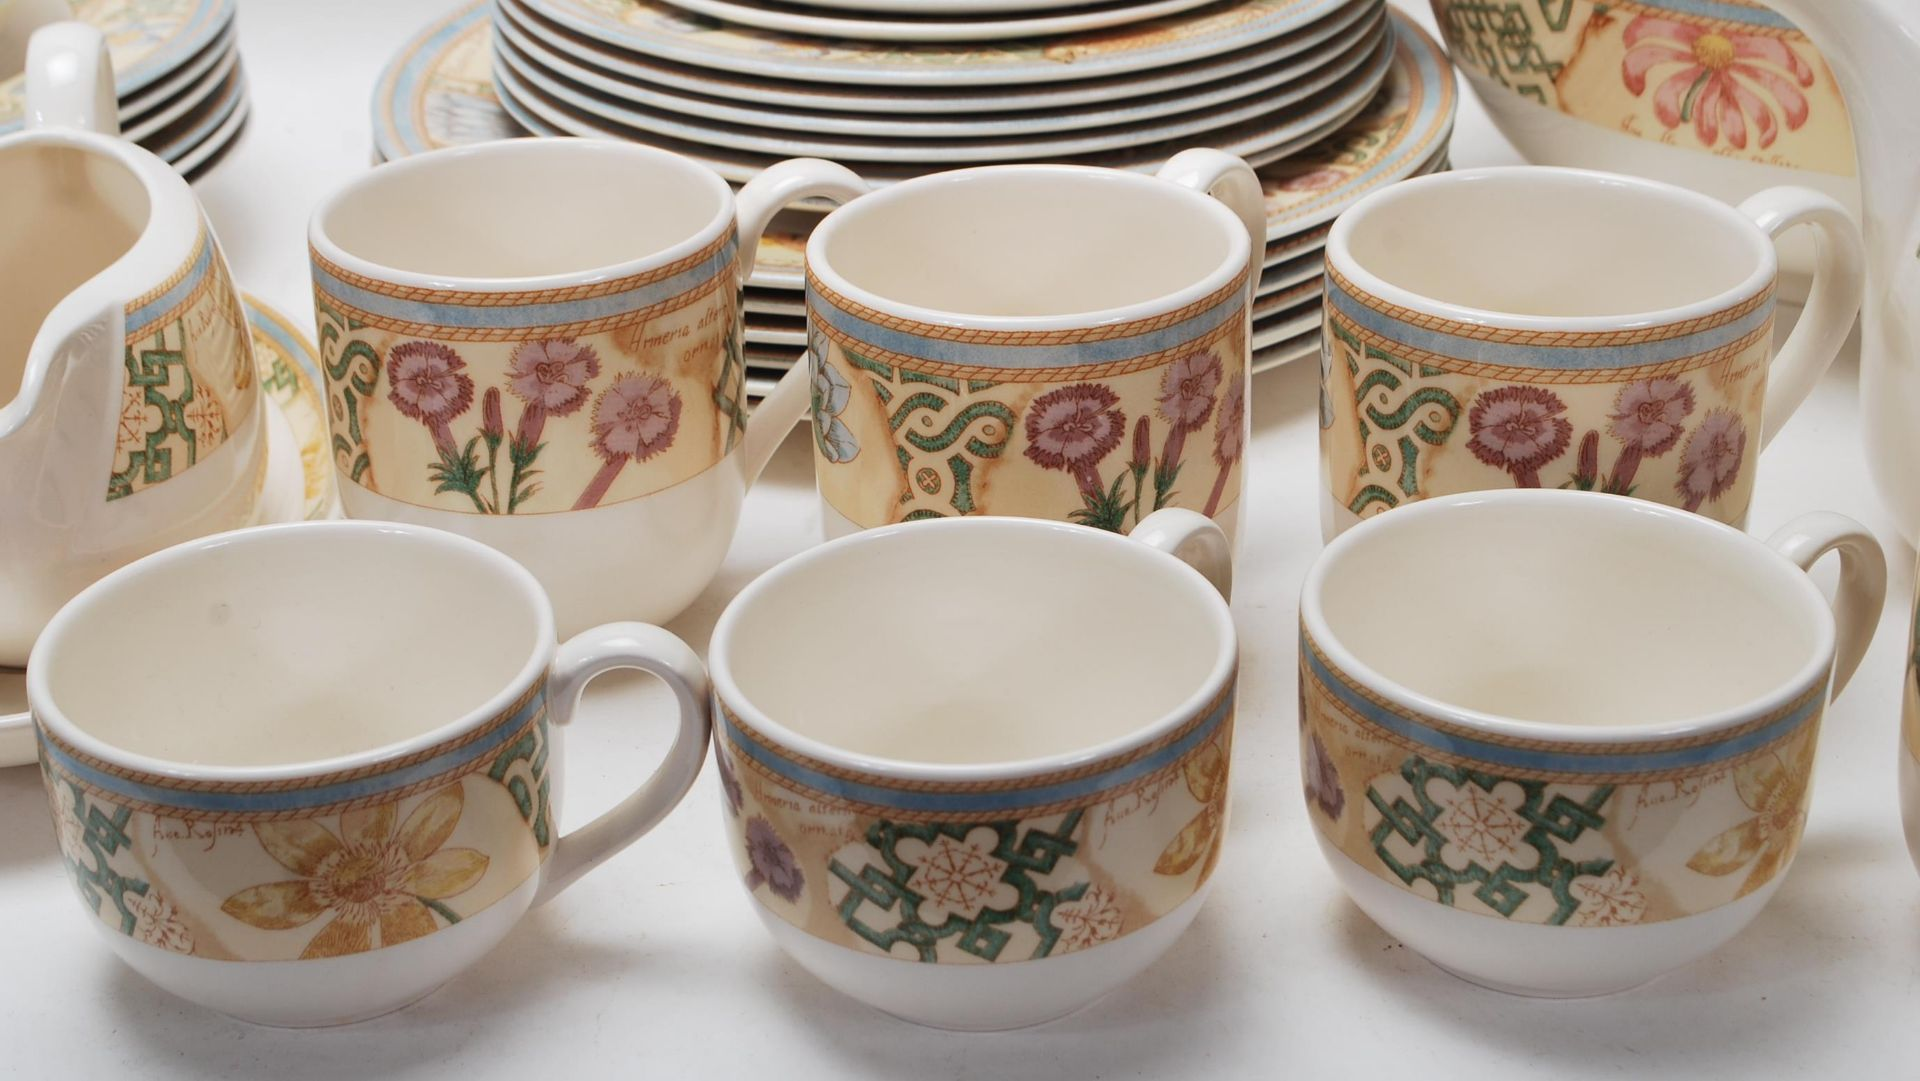 A LARGE 20TH CENTURY WEDGWOOD DINNER SERVICE WITH GRDEN MAZE PATTERN - Image 2 of 11